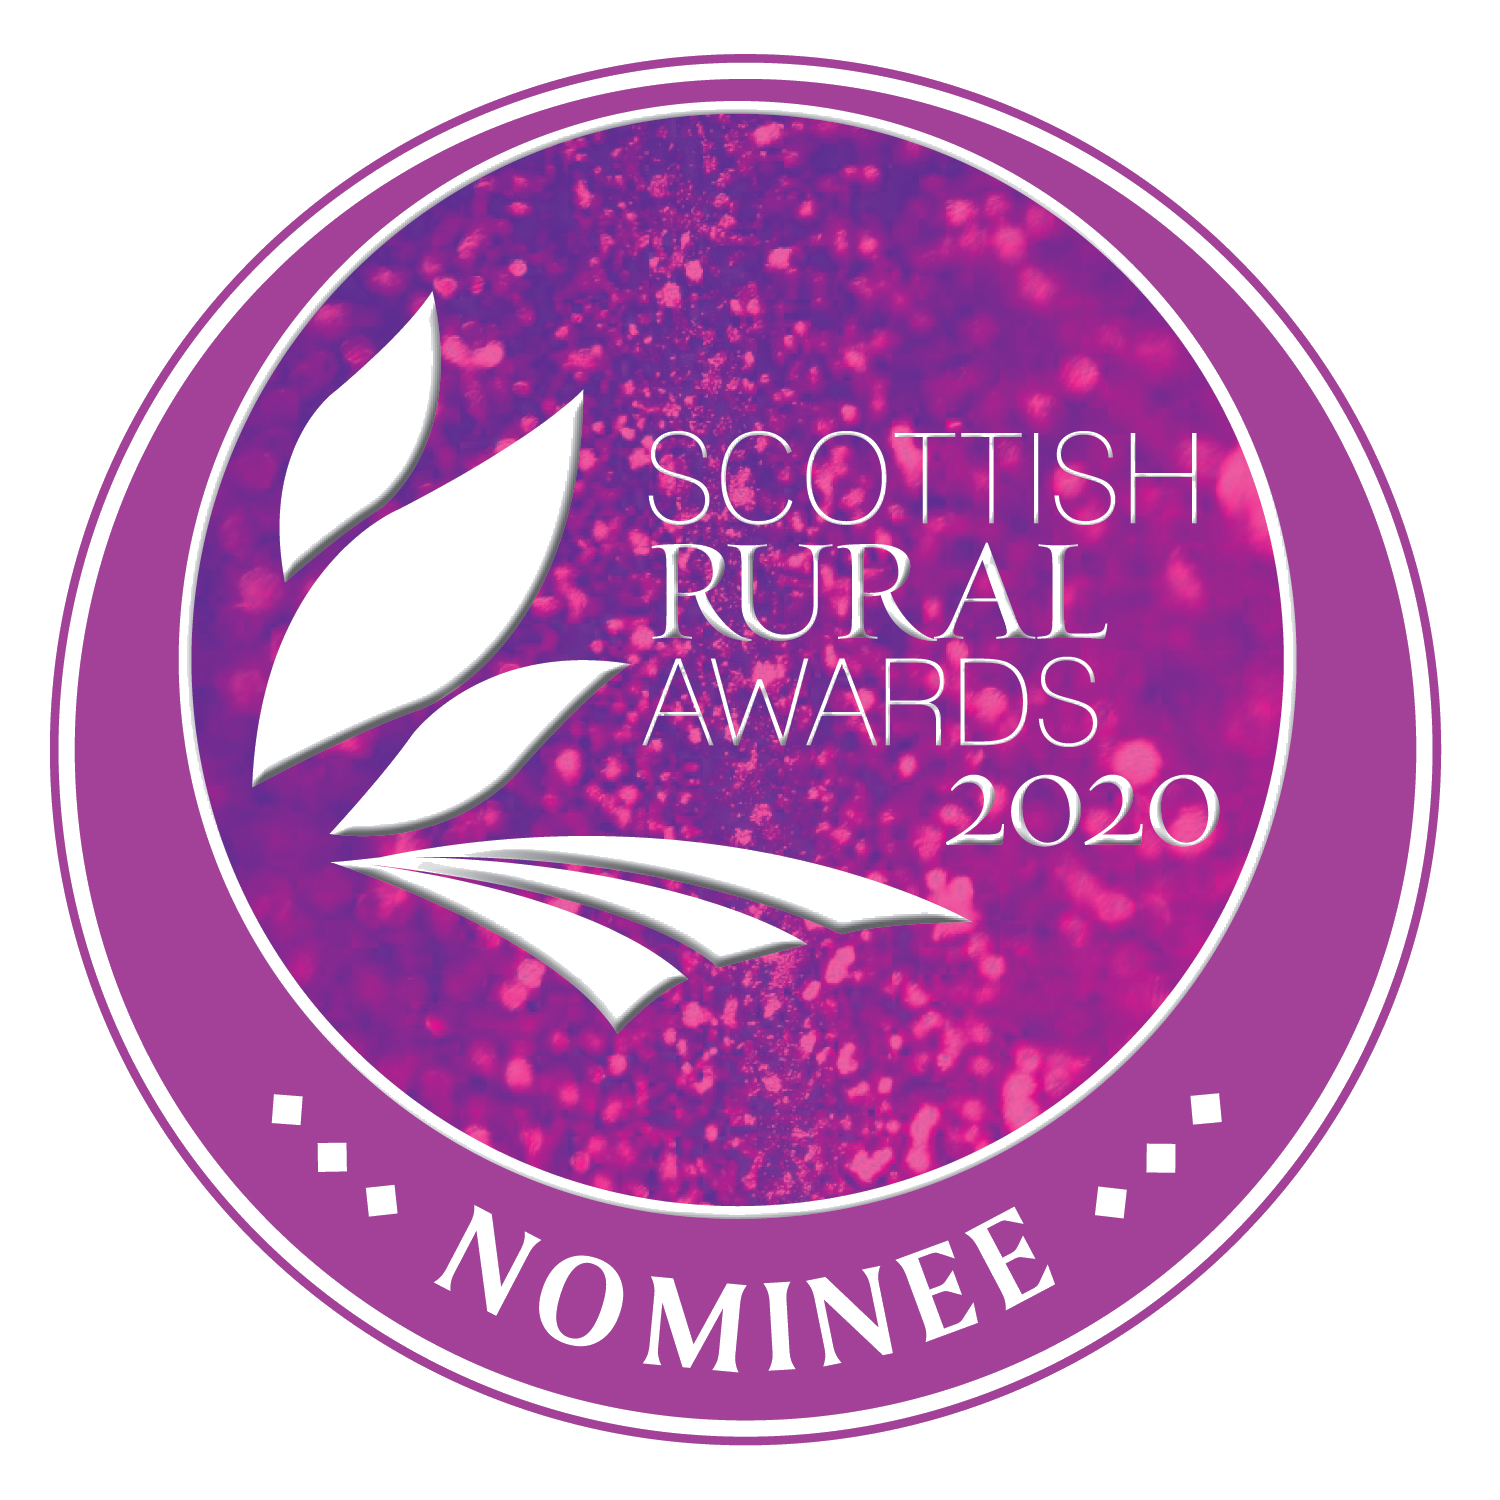 Scottish Rural Awards Nominee logo